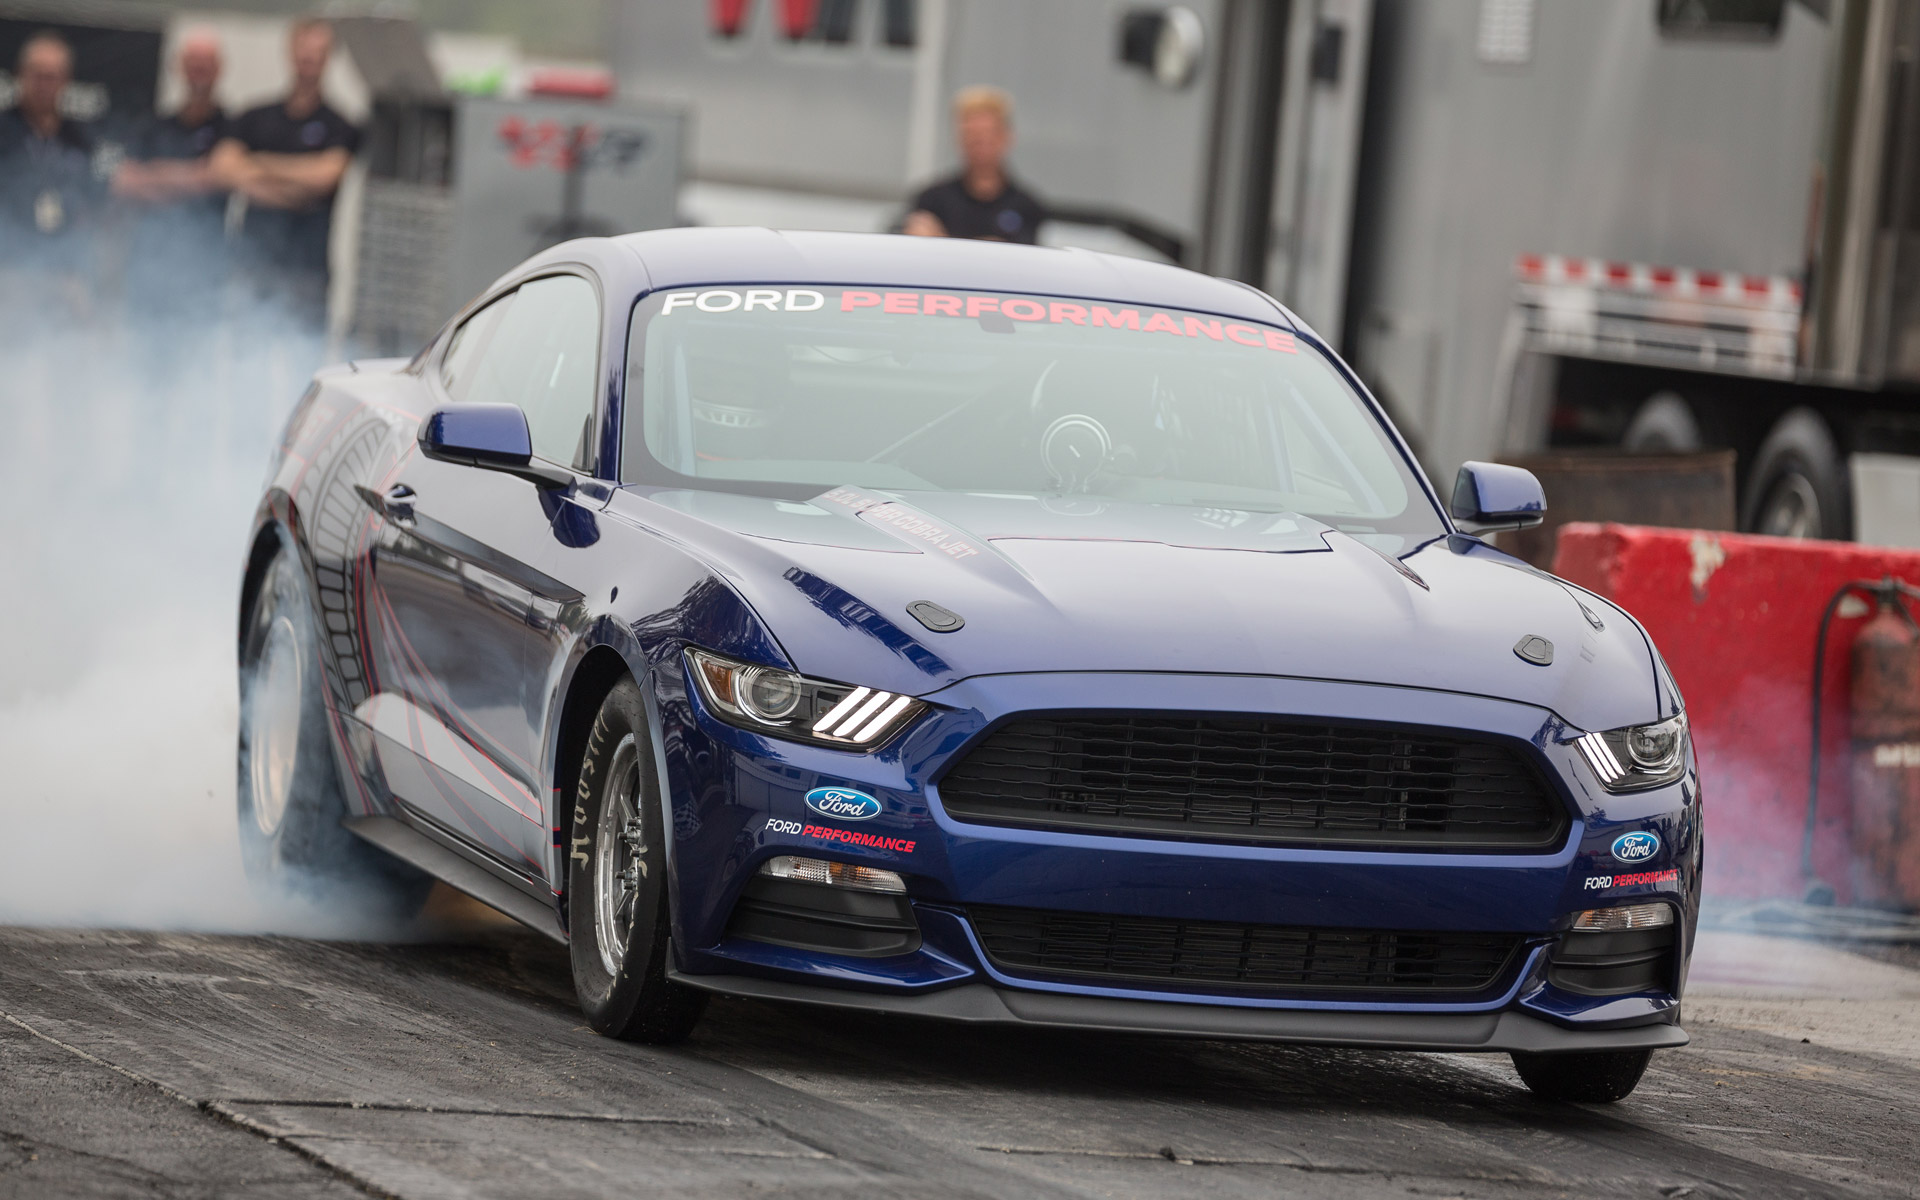 2016 ford mustang cobra jet revealed runs 8 0 second - Mustang cobra ...